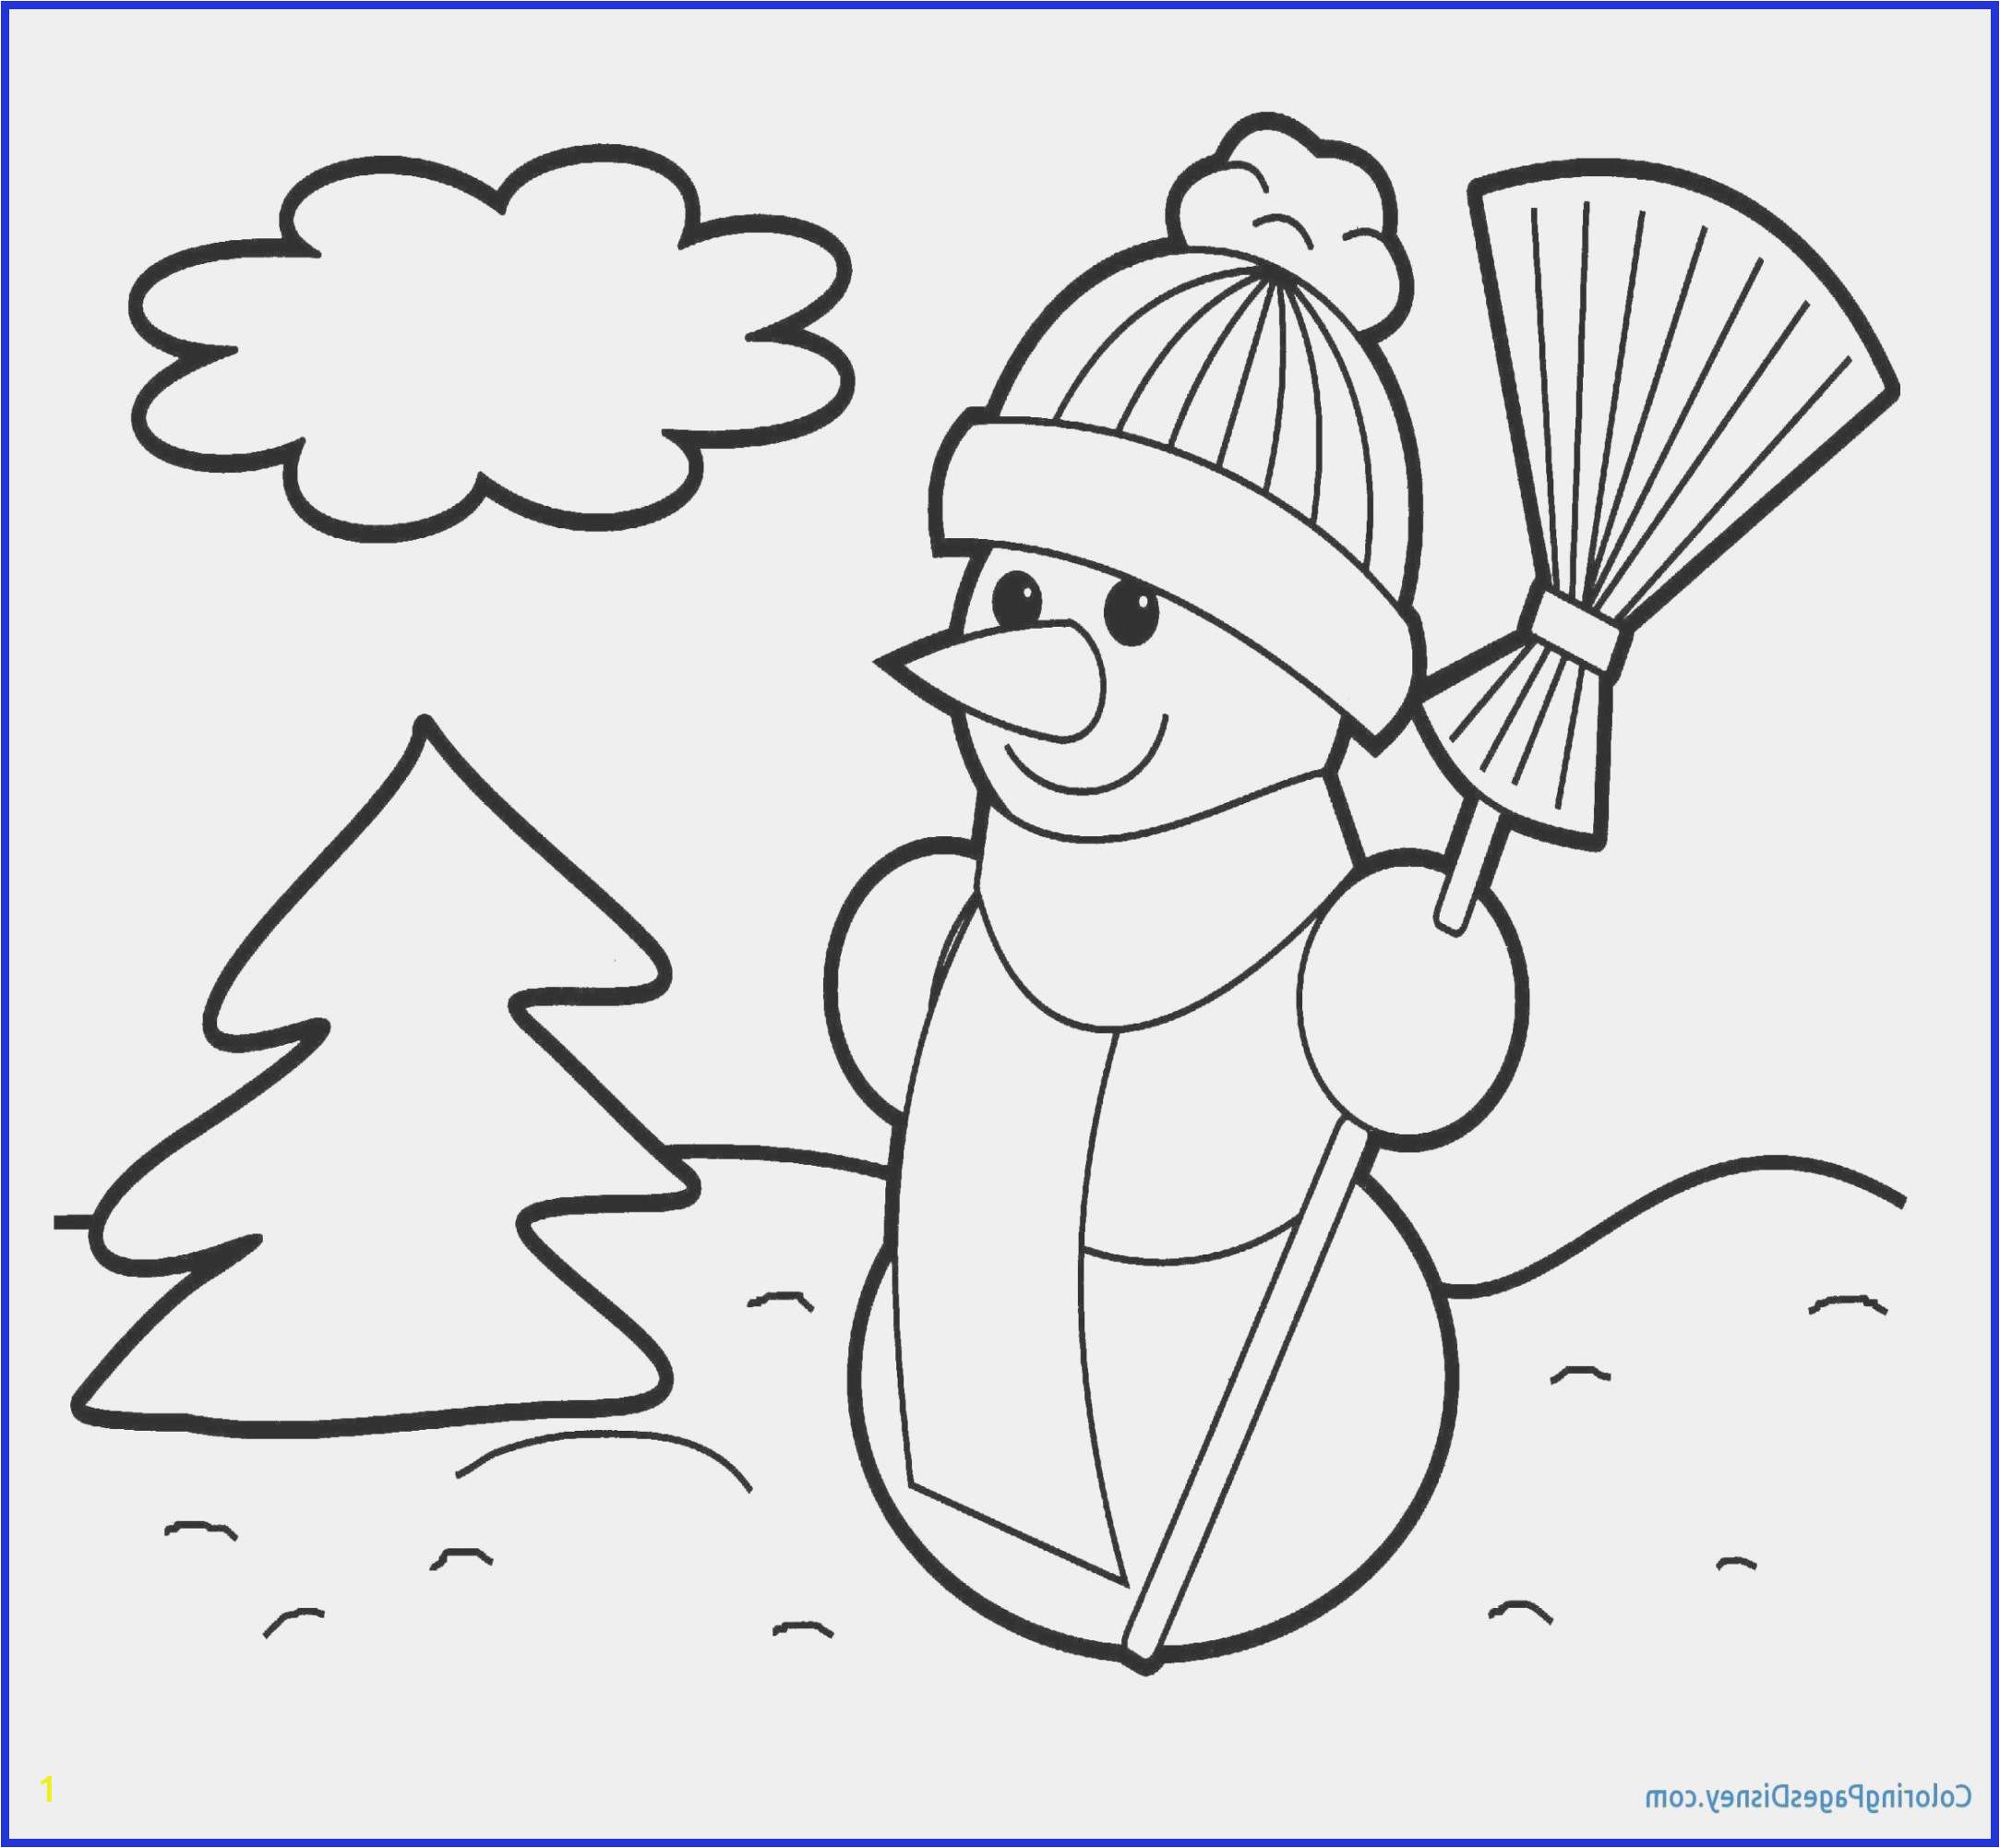 caterpillars coloring page best of photos flip flops coloring pages of caterpillars coloring page